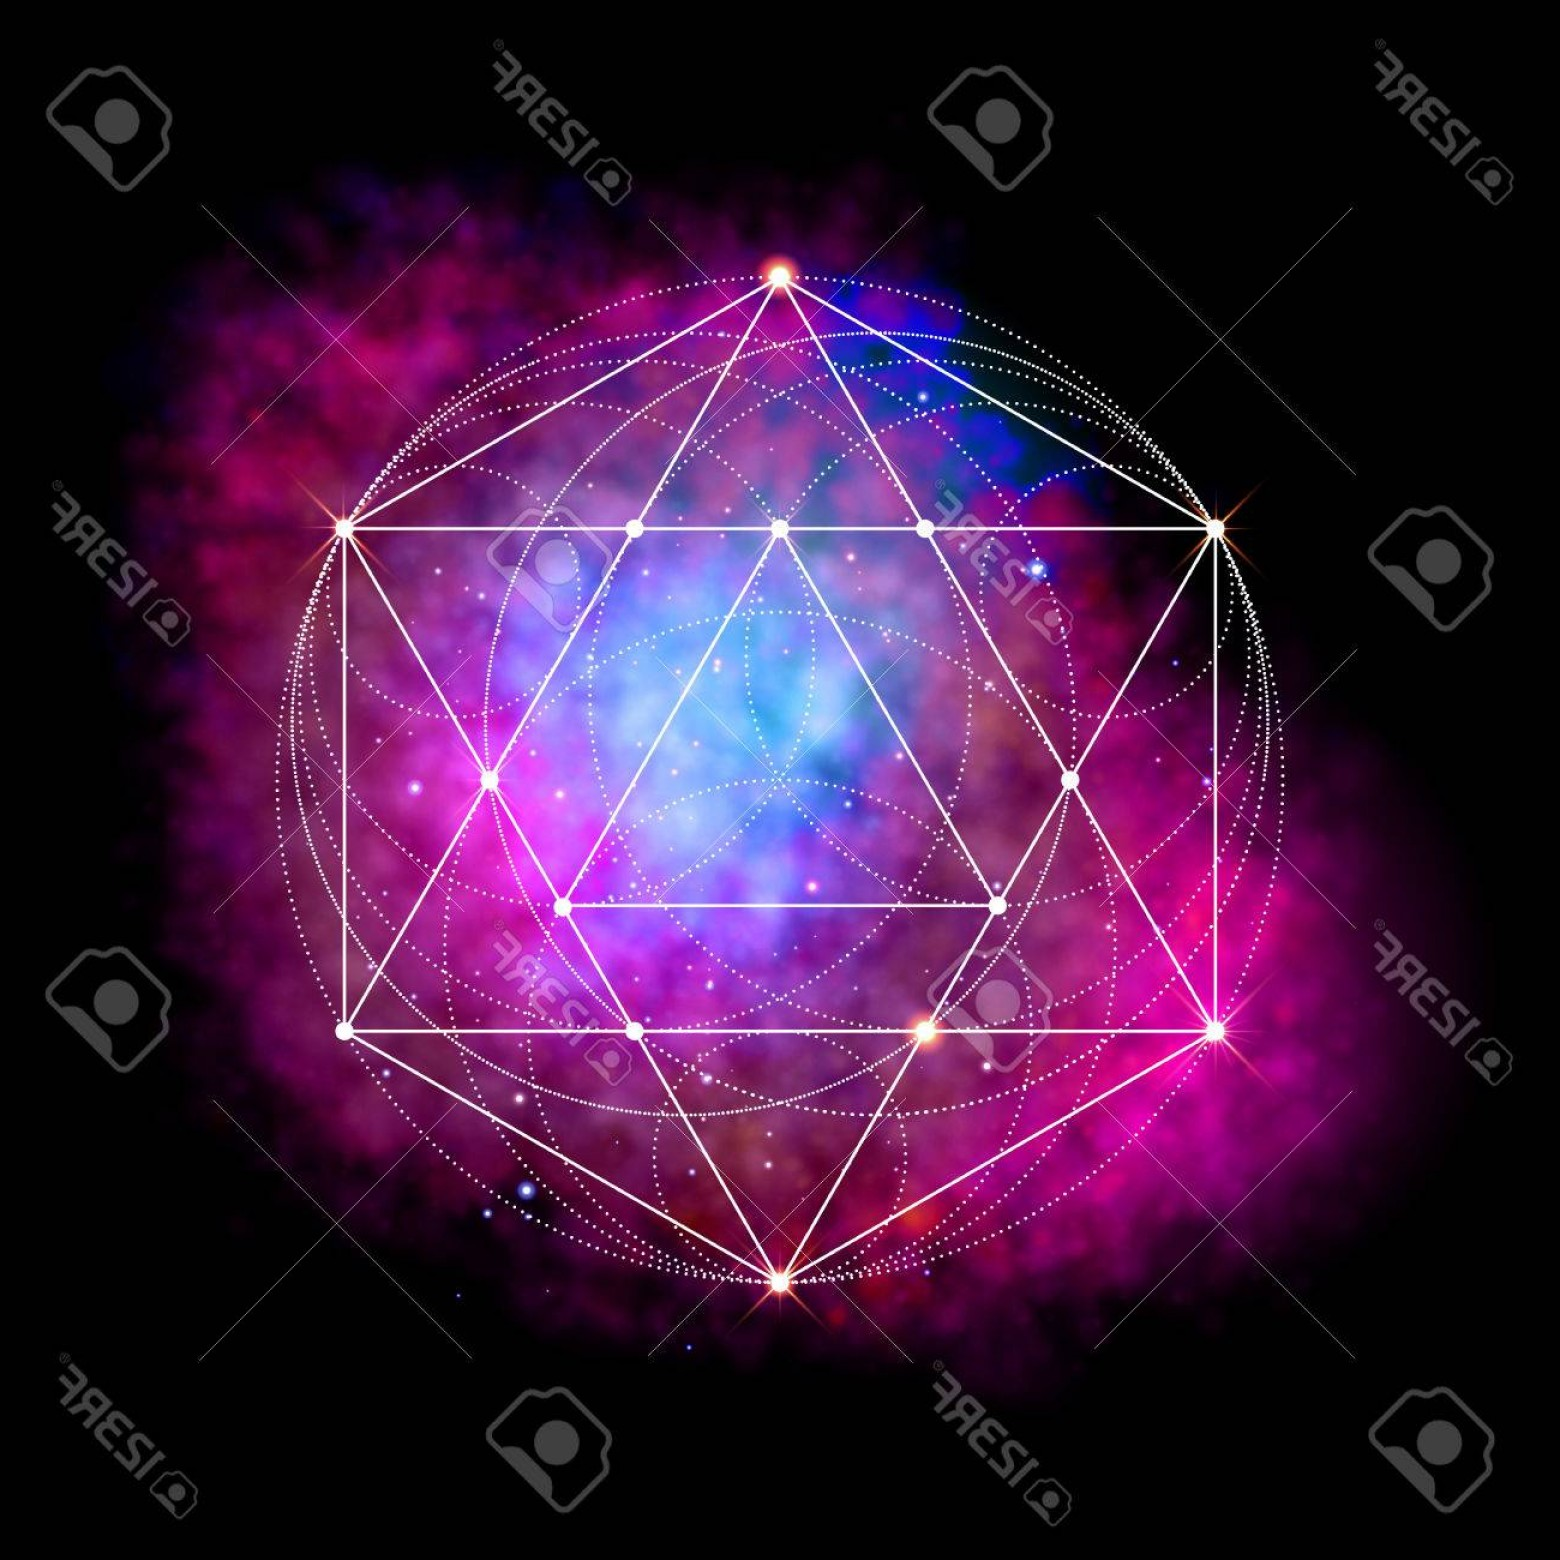 Cosmic Vector Imige: Photostock Vector Sacred Geometry Symbol Abstract Cosmic Vector Illustration Flower Of Life Metatrons Cube Neon Space